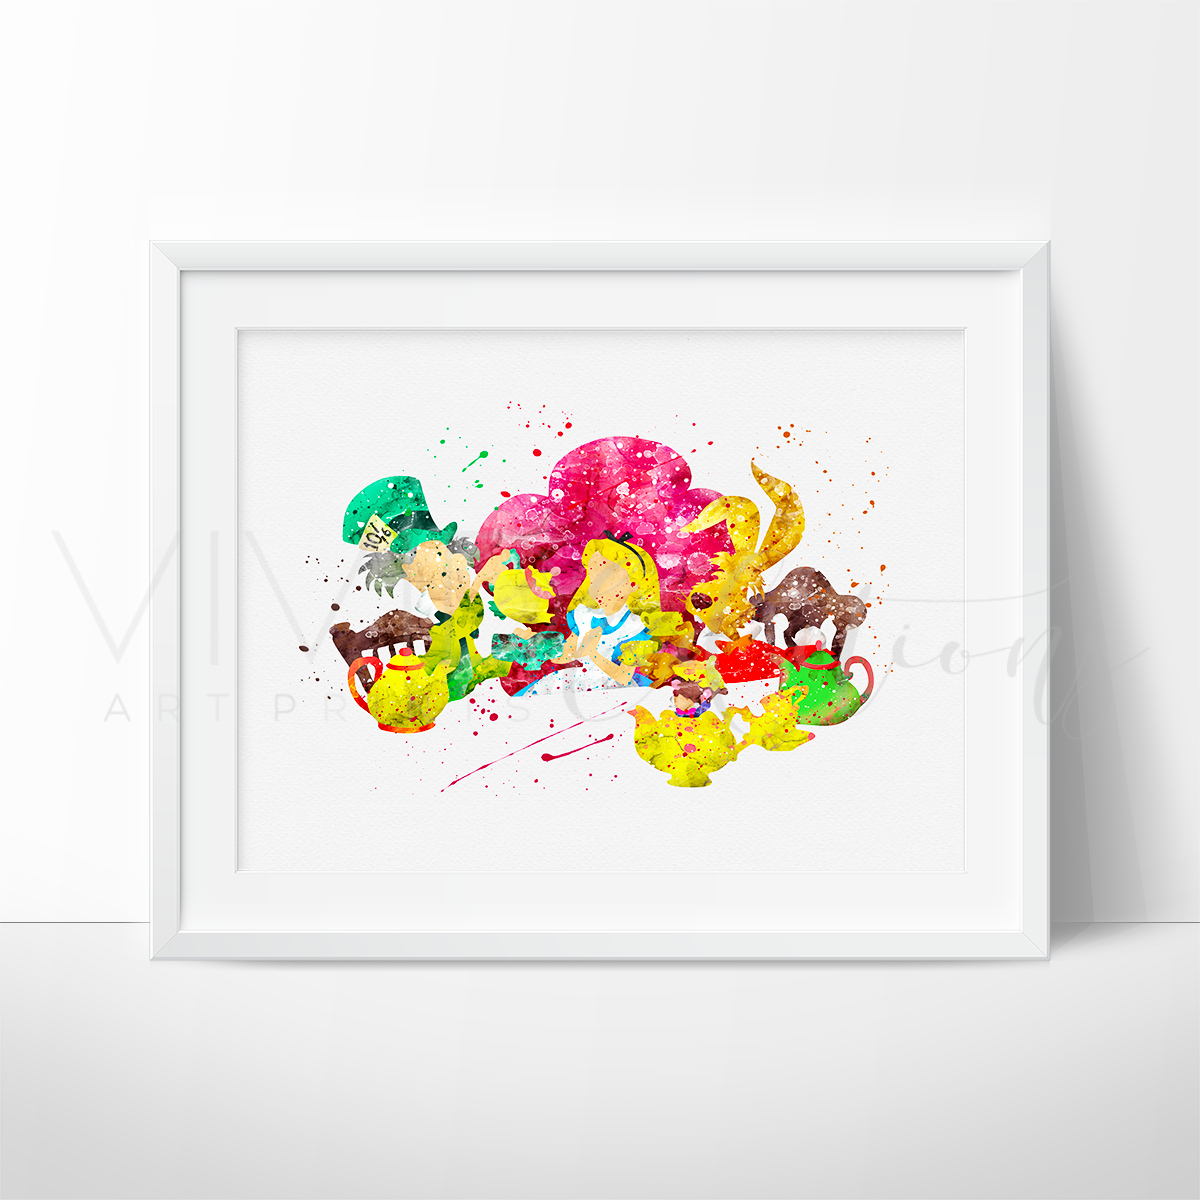 Alice in Wonderland + Friends Watercolor Art Print Art Print - VIVIDEDITIONS